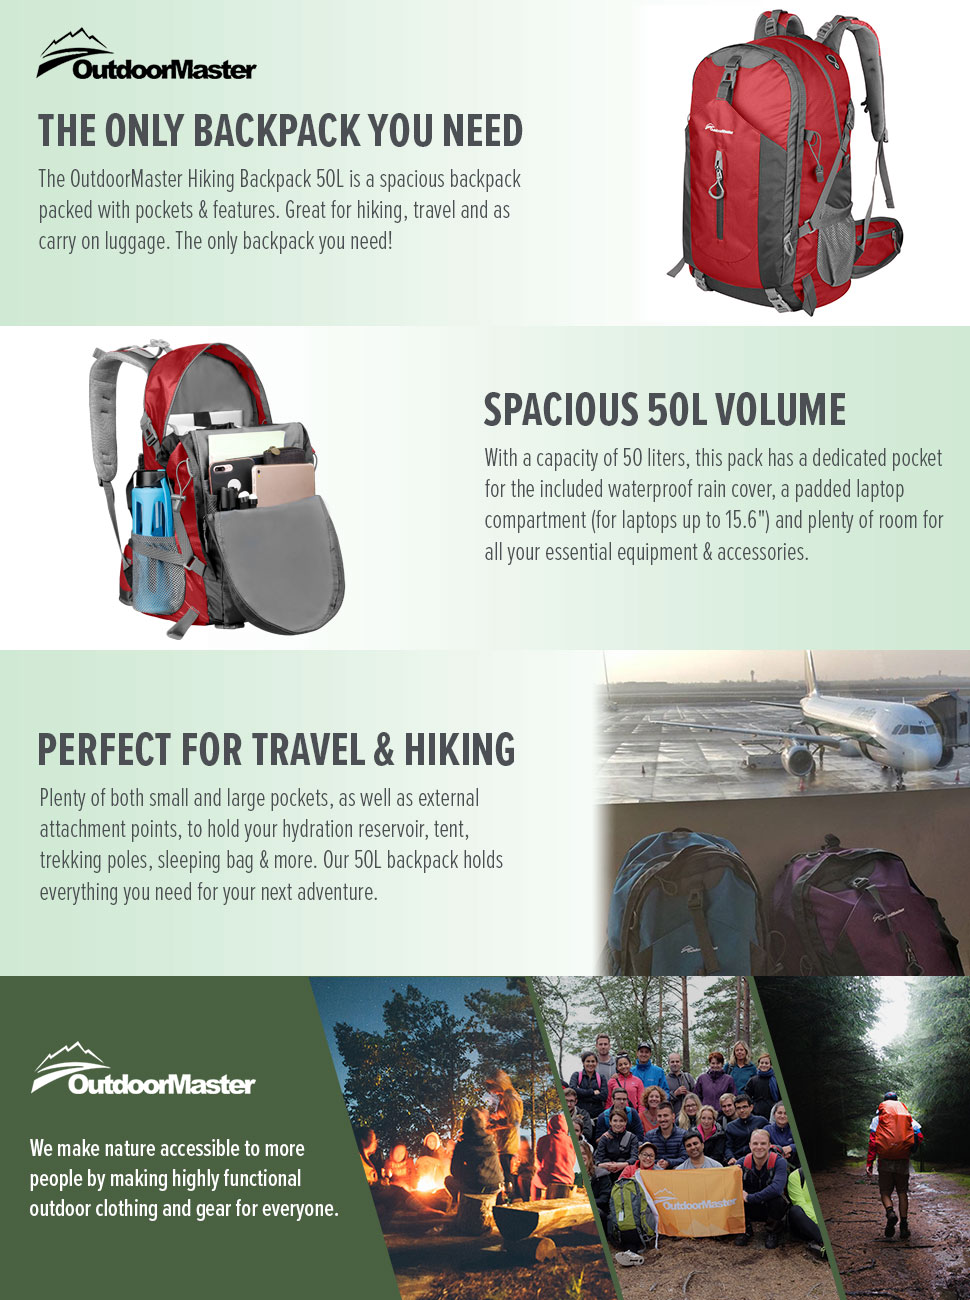 a01609baed0b Amazon.com   OutdoorMaster Hiking Backpack 50L - Hiking   Travel ...